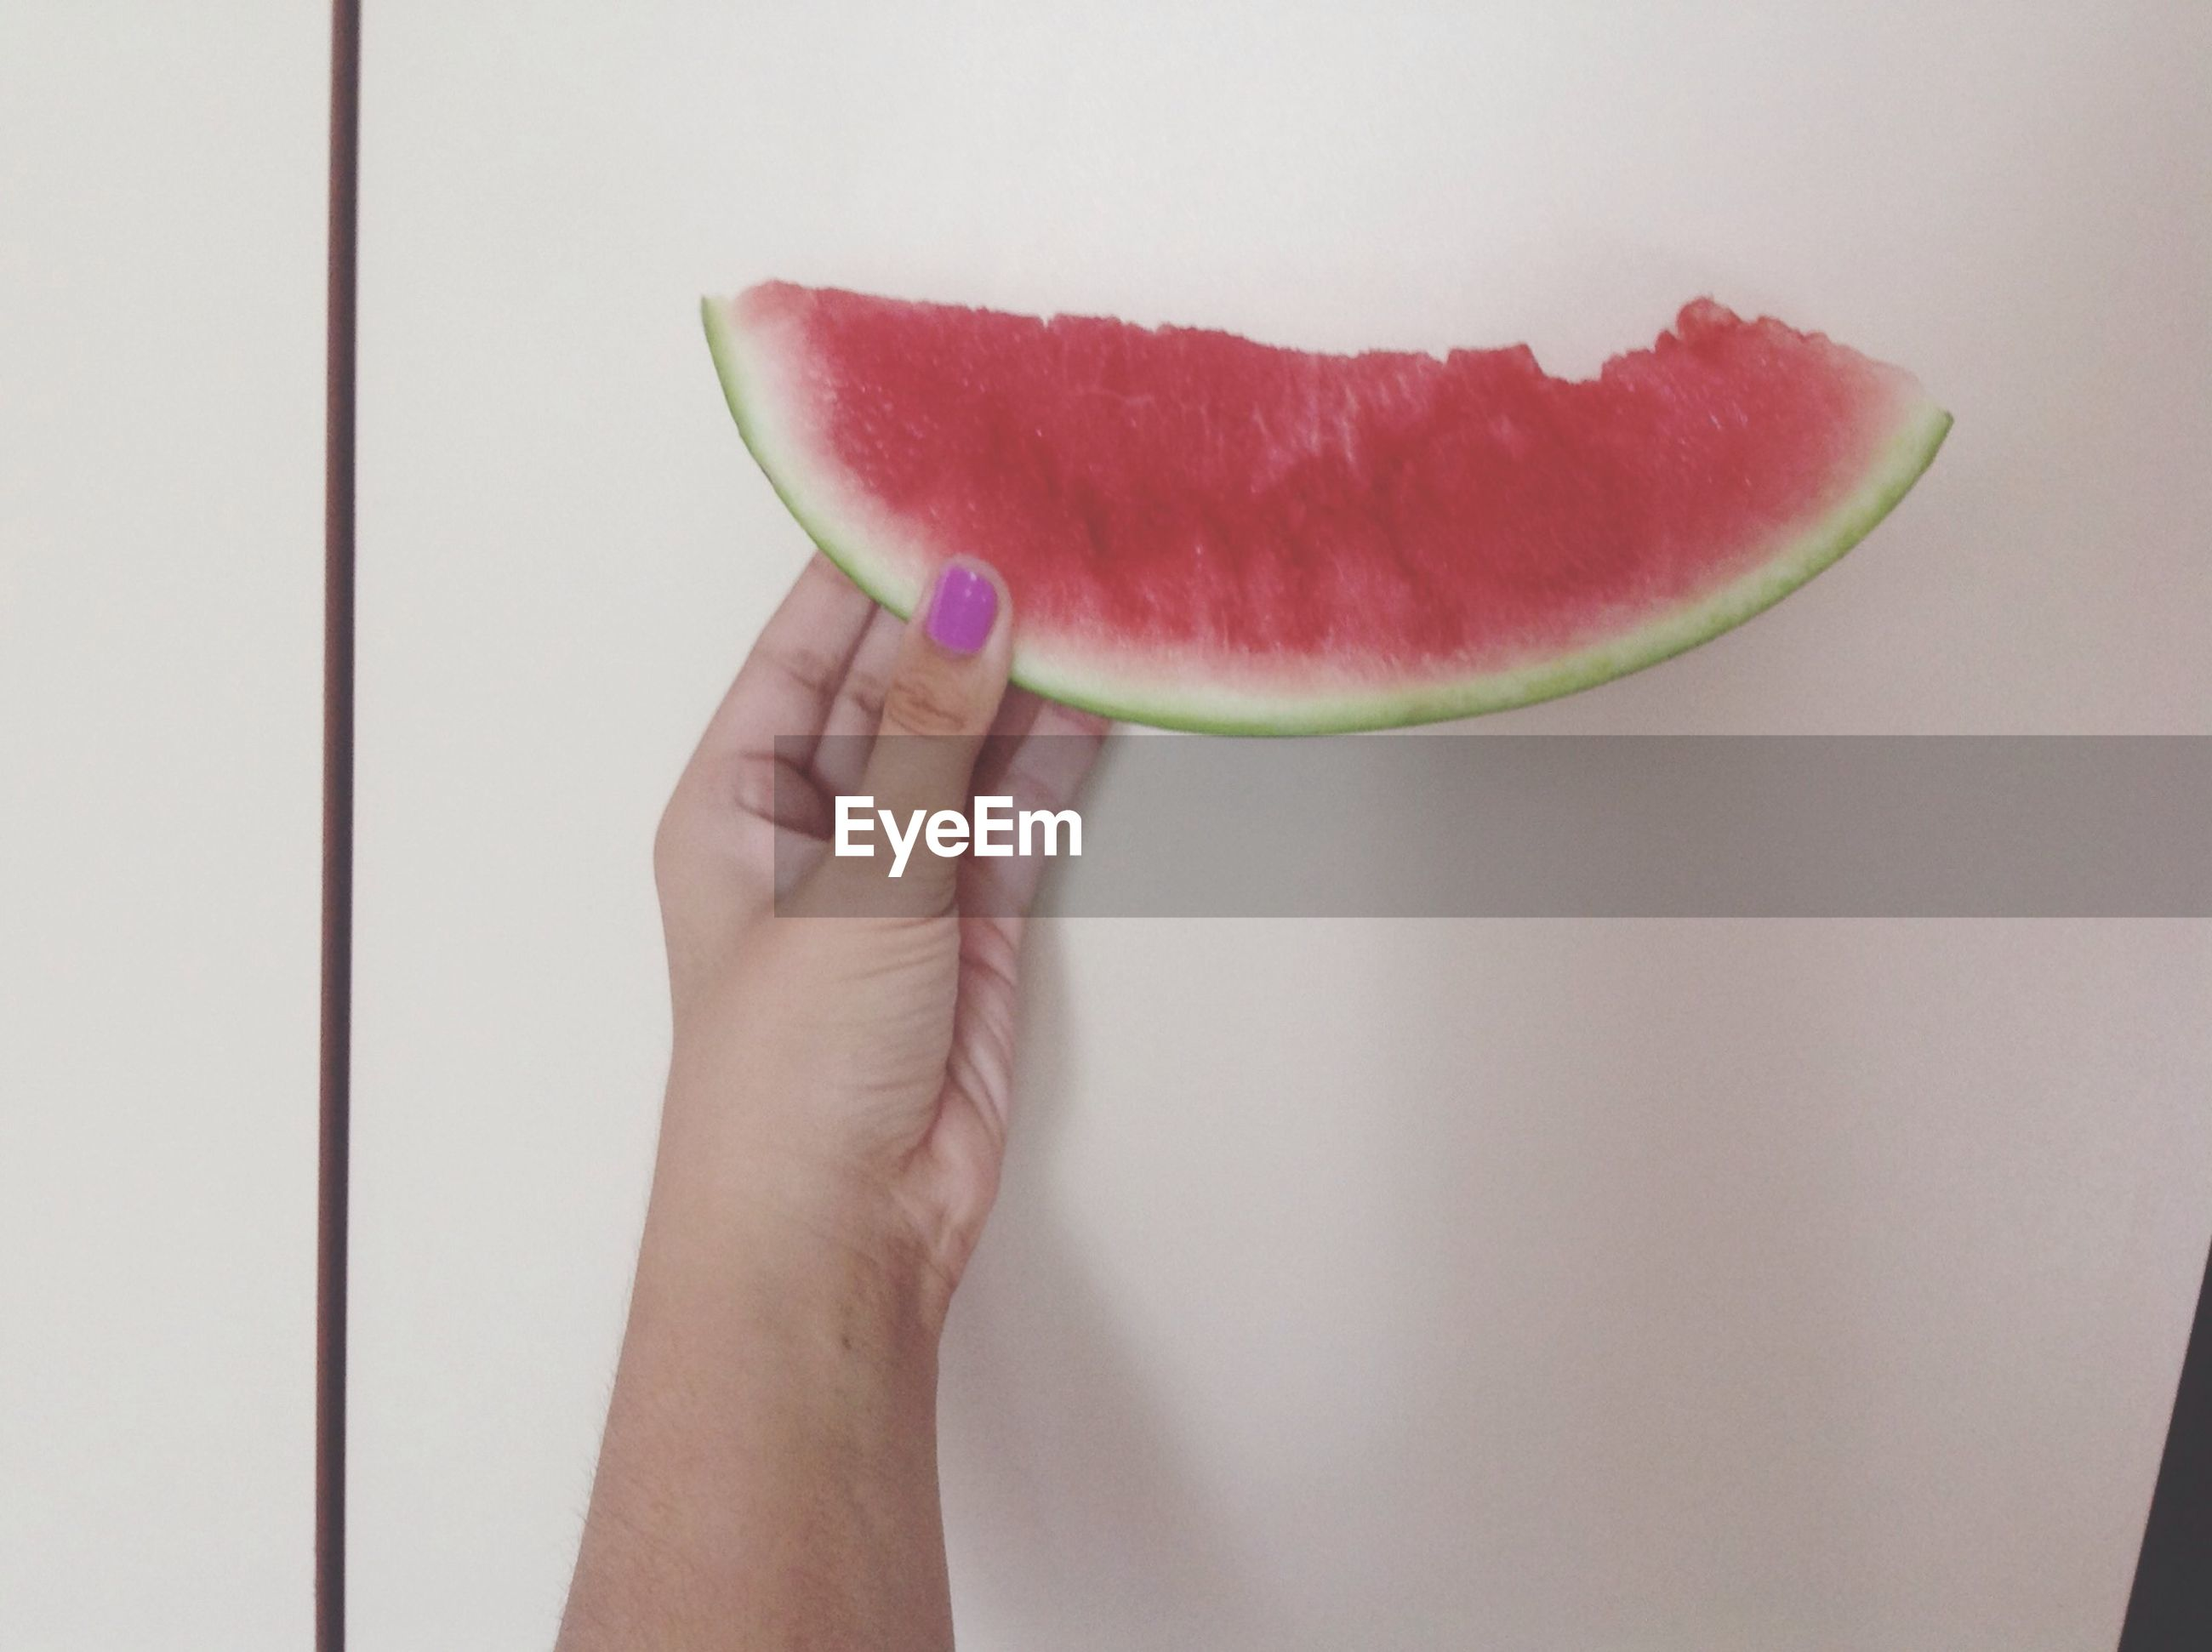 person, food and drink, holding, part of, cropped, freshness, food, indoors, red, fruit, close-up, healthy eating, personal perspective, lifestyles, human finger, unrecognizable person